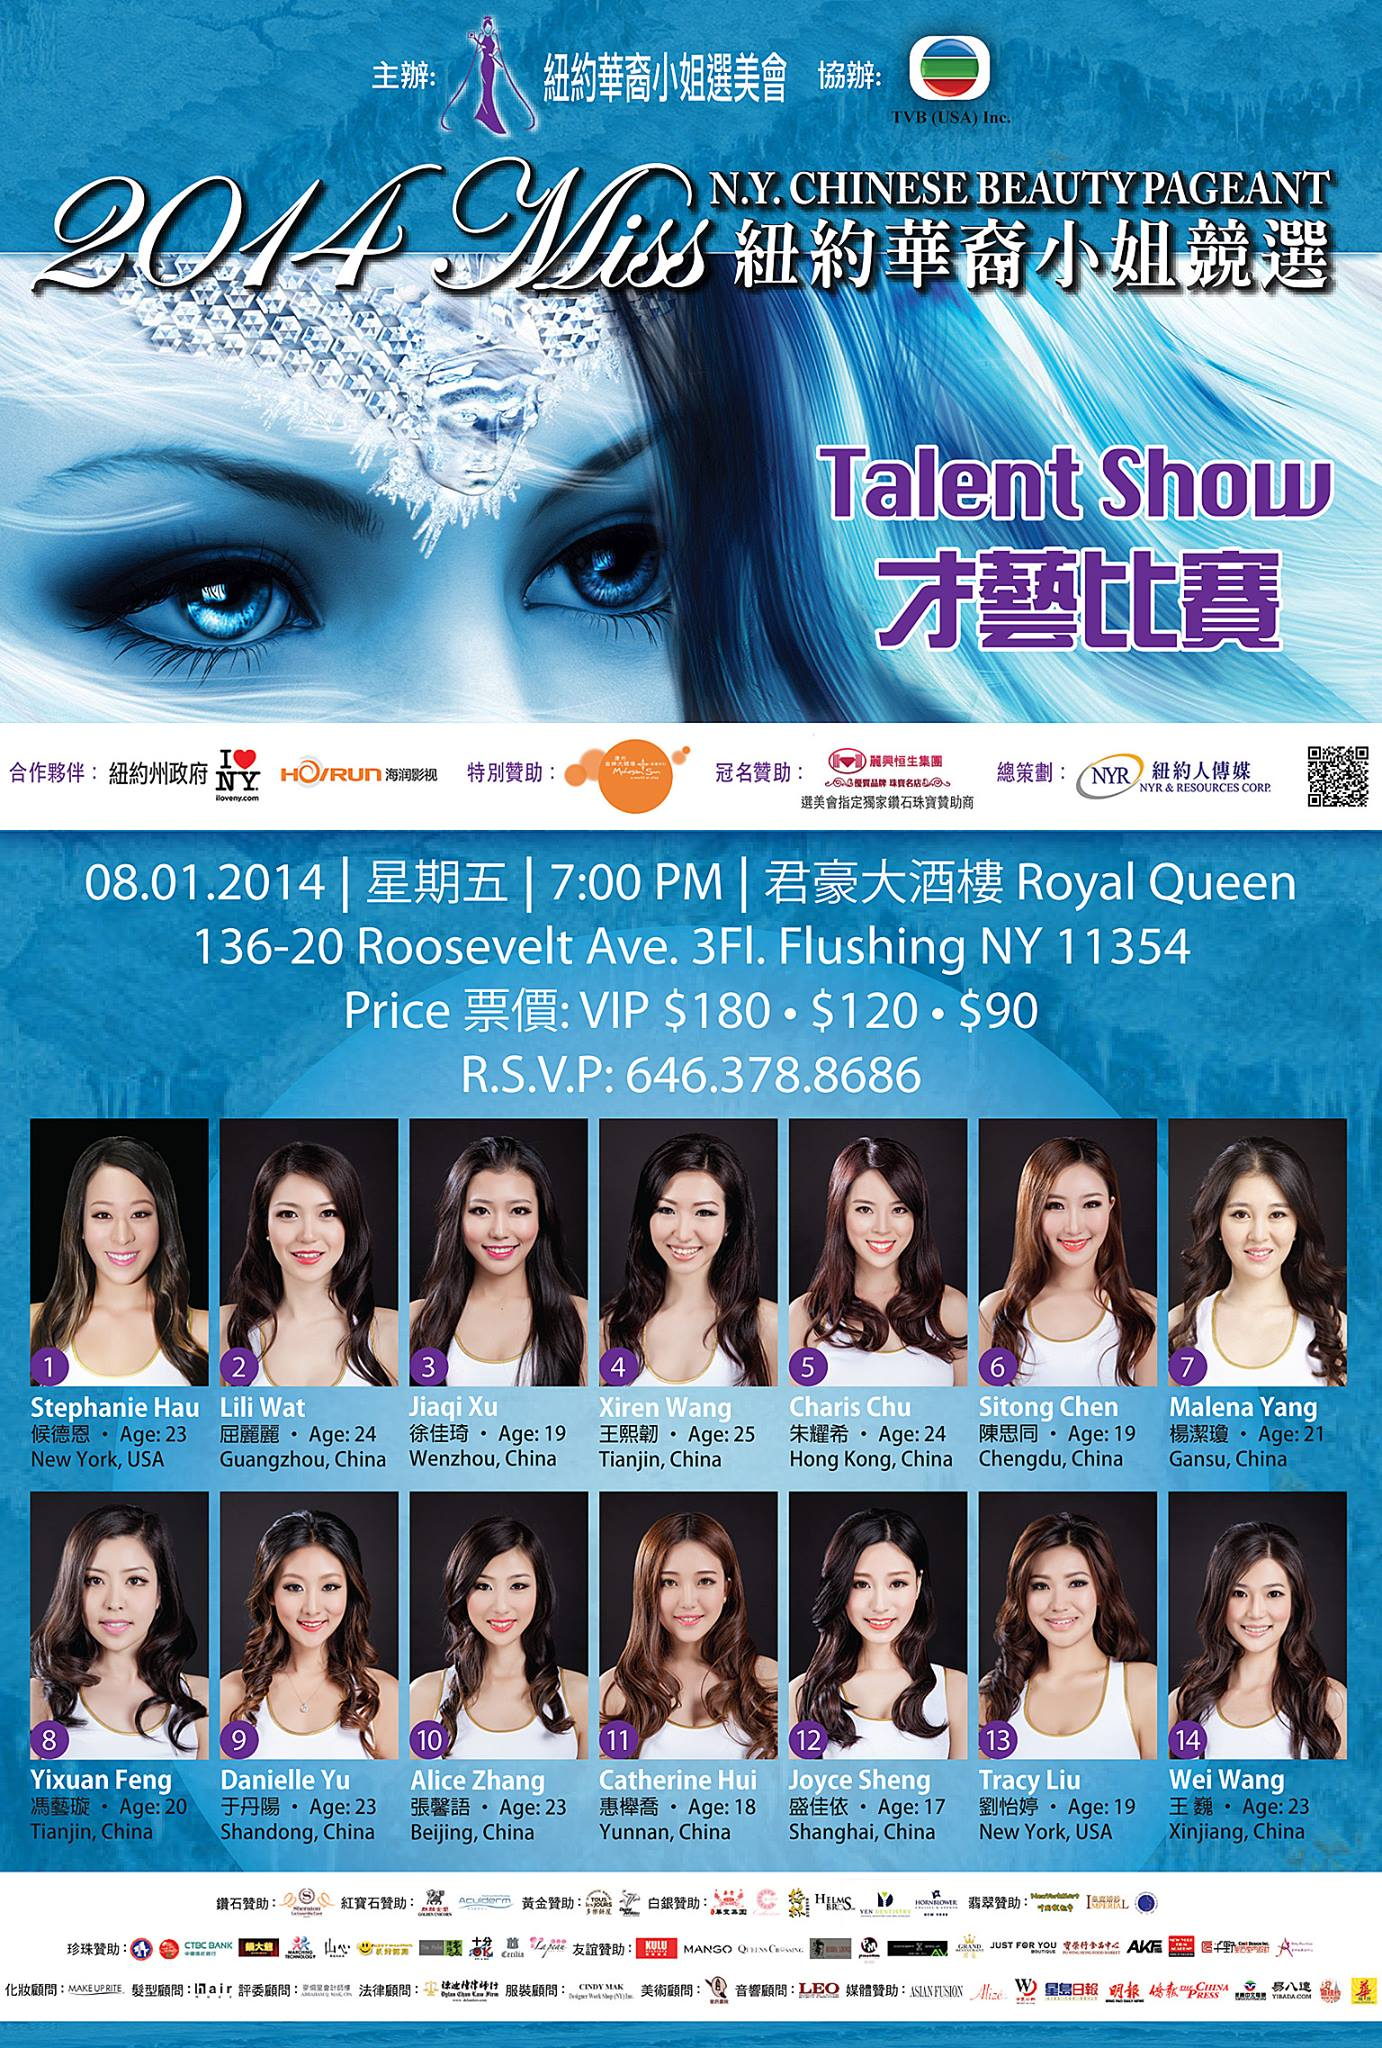 Miss Chinese NY Beauty Pageant Talent Show